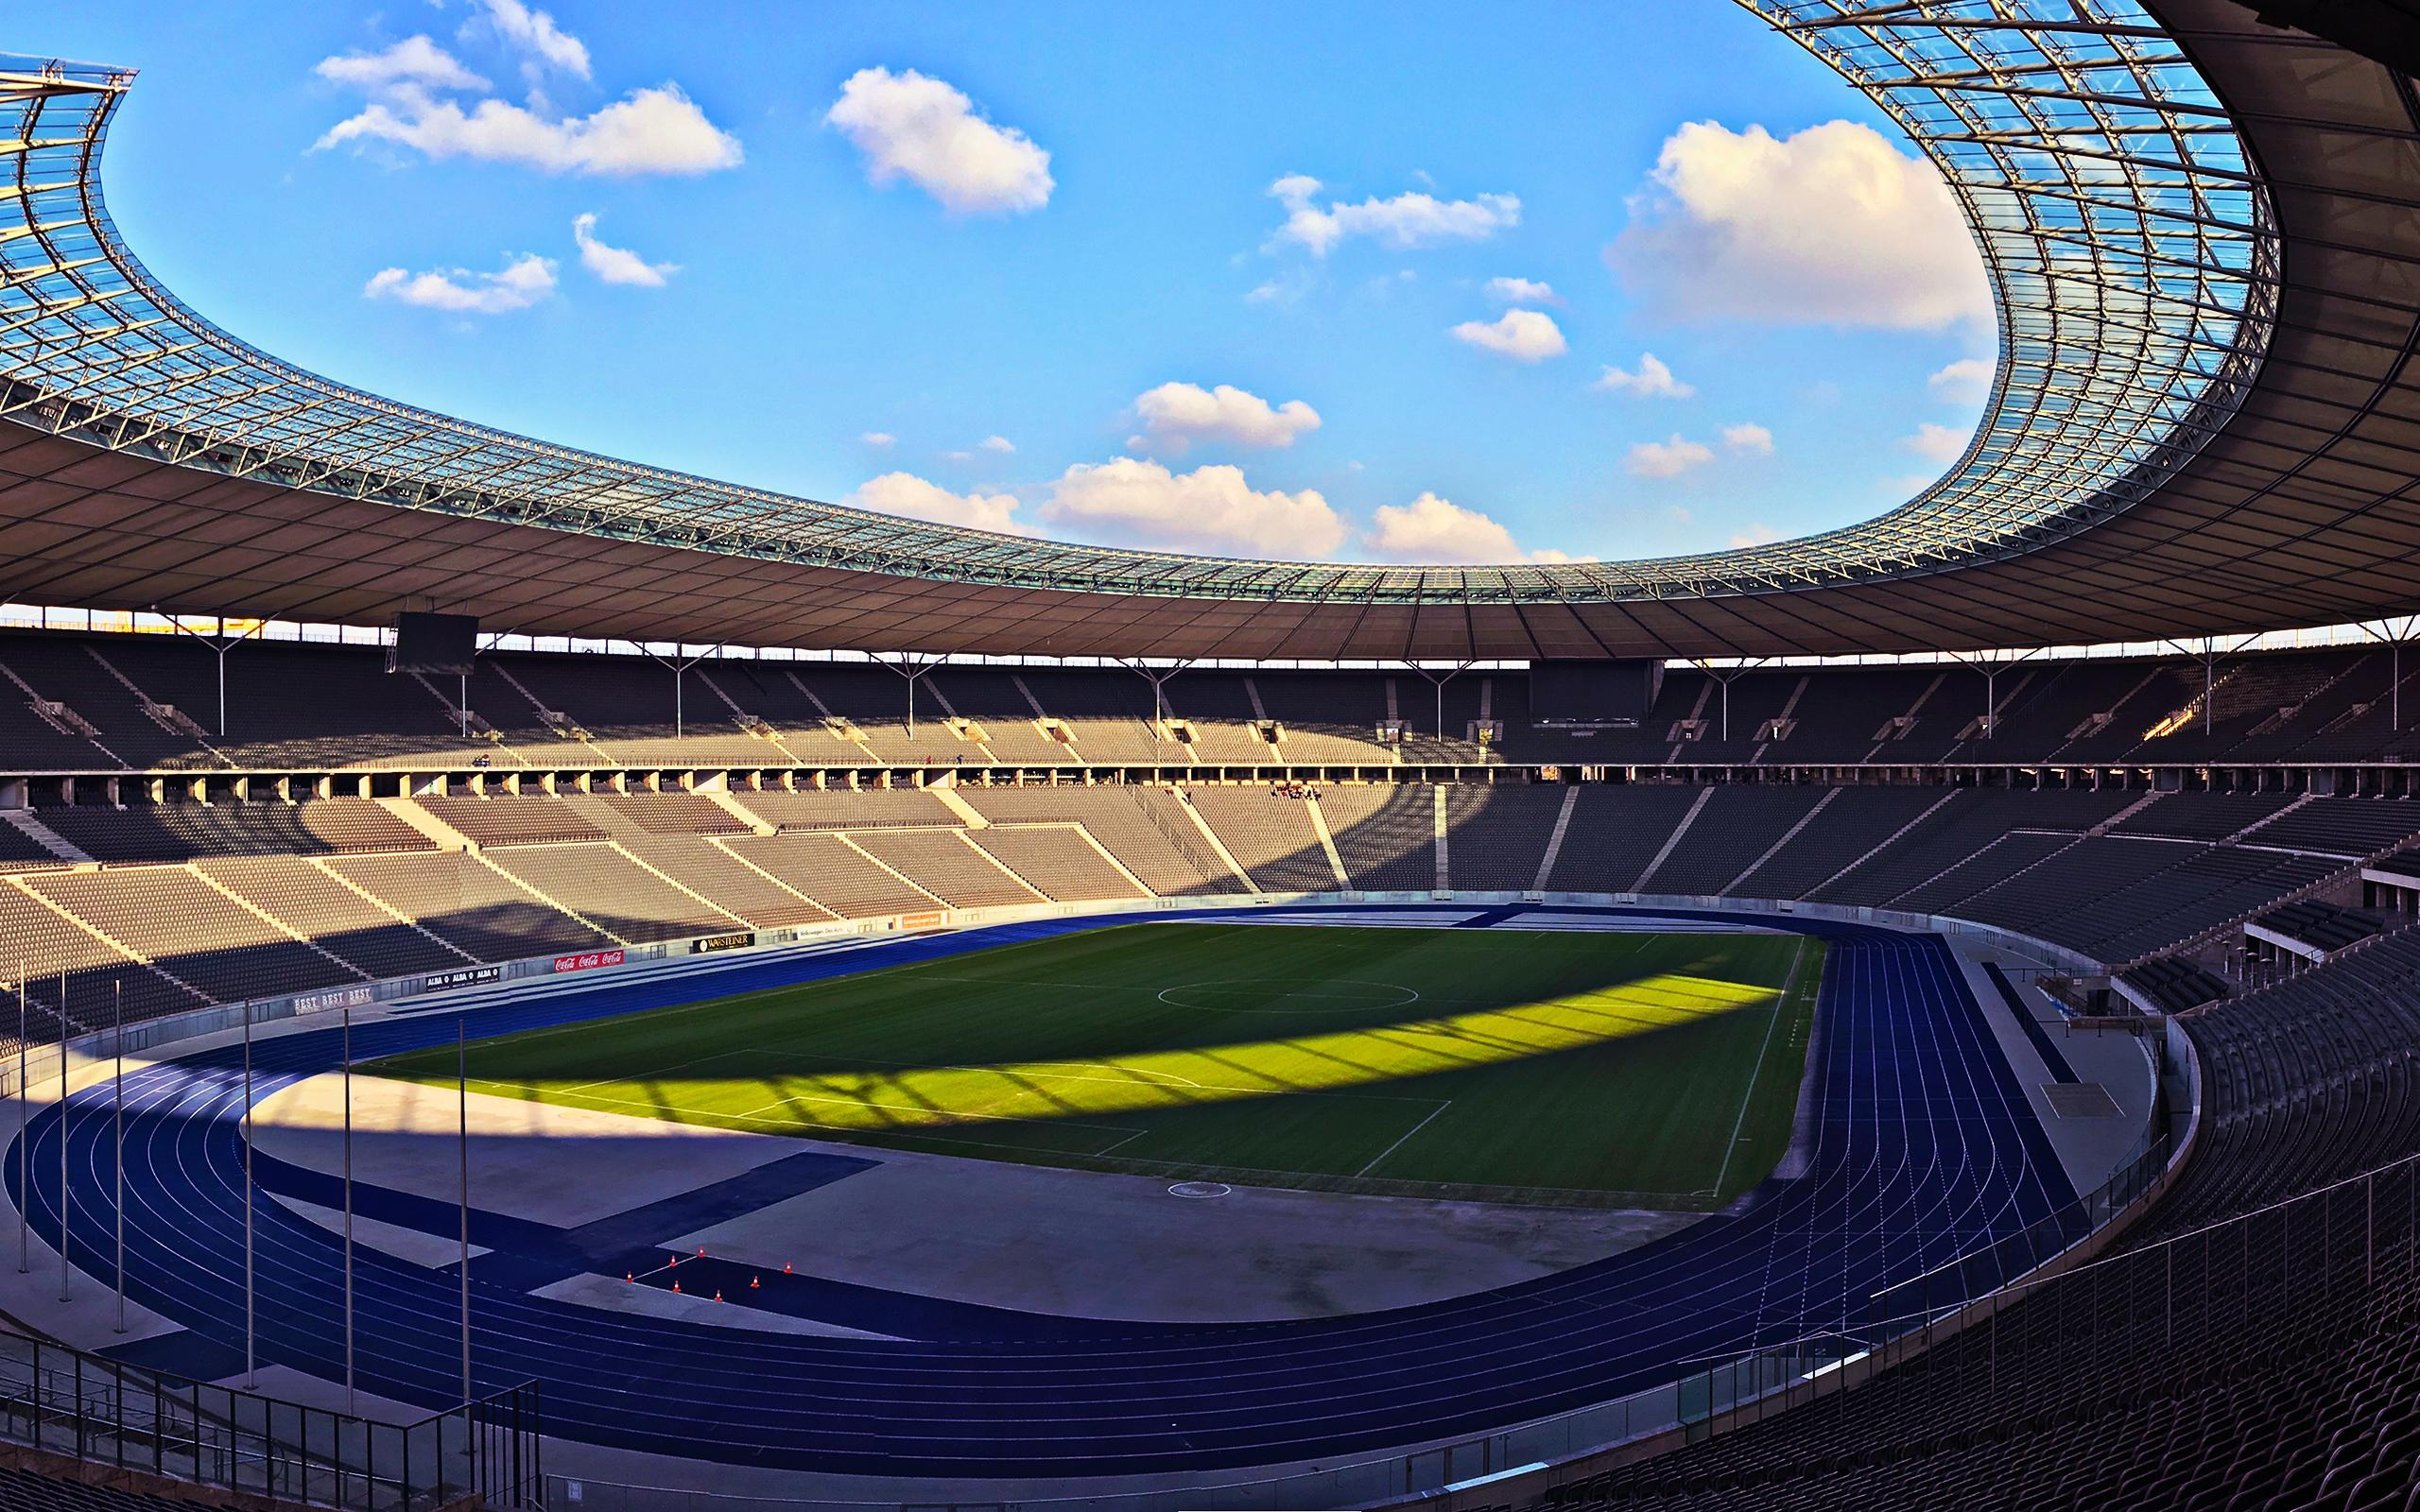 Download wallpapers Olympiastadion Berlin, Germany, German Football